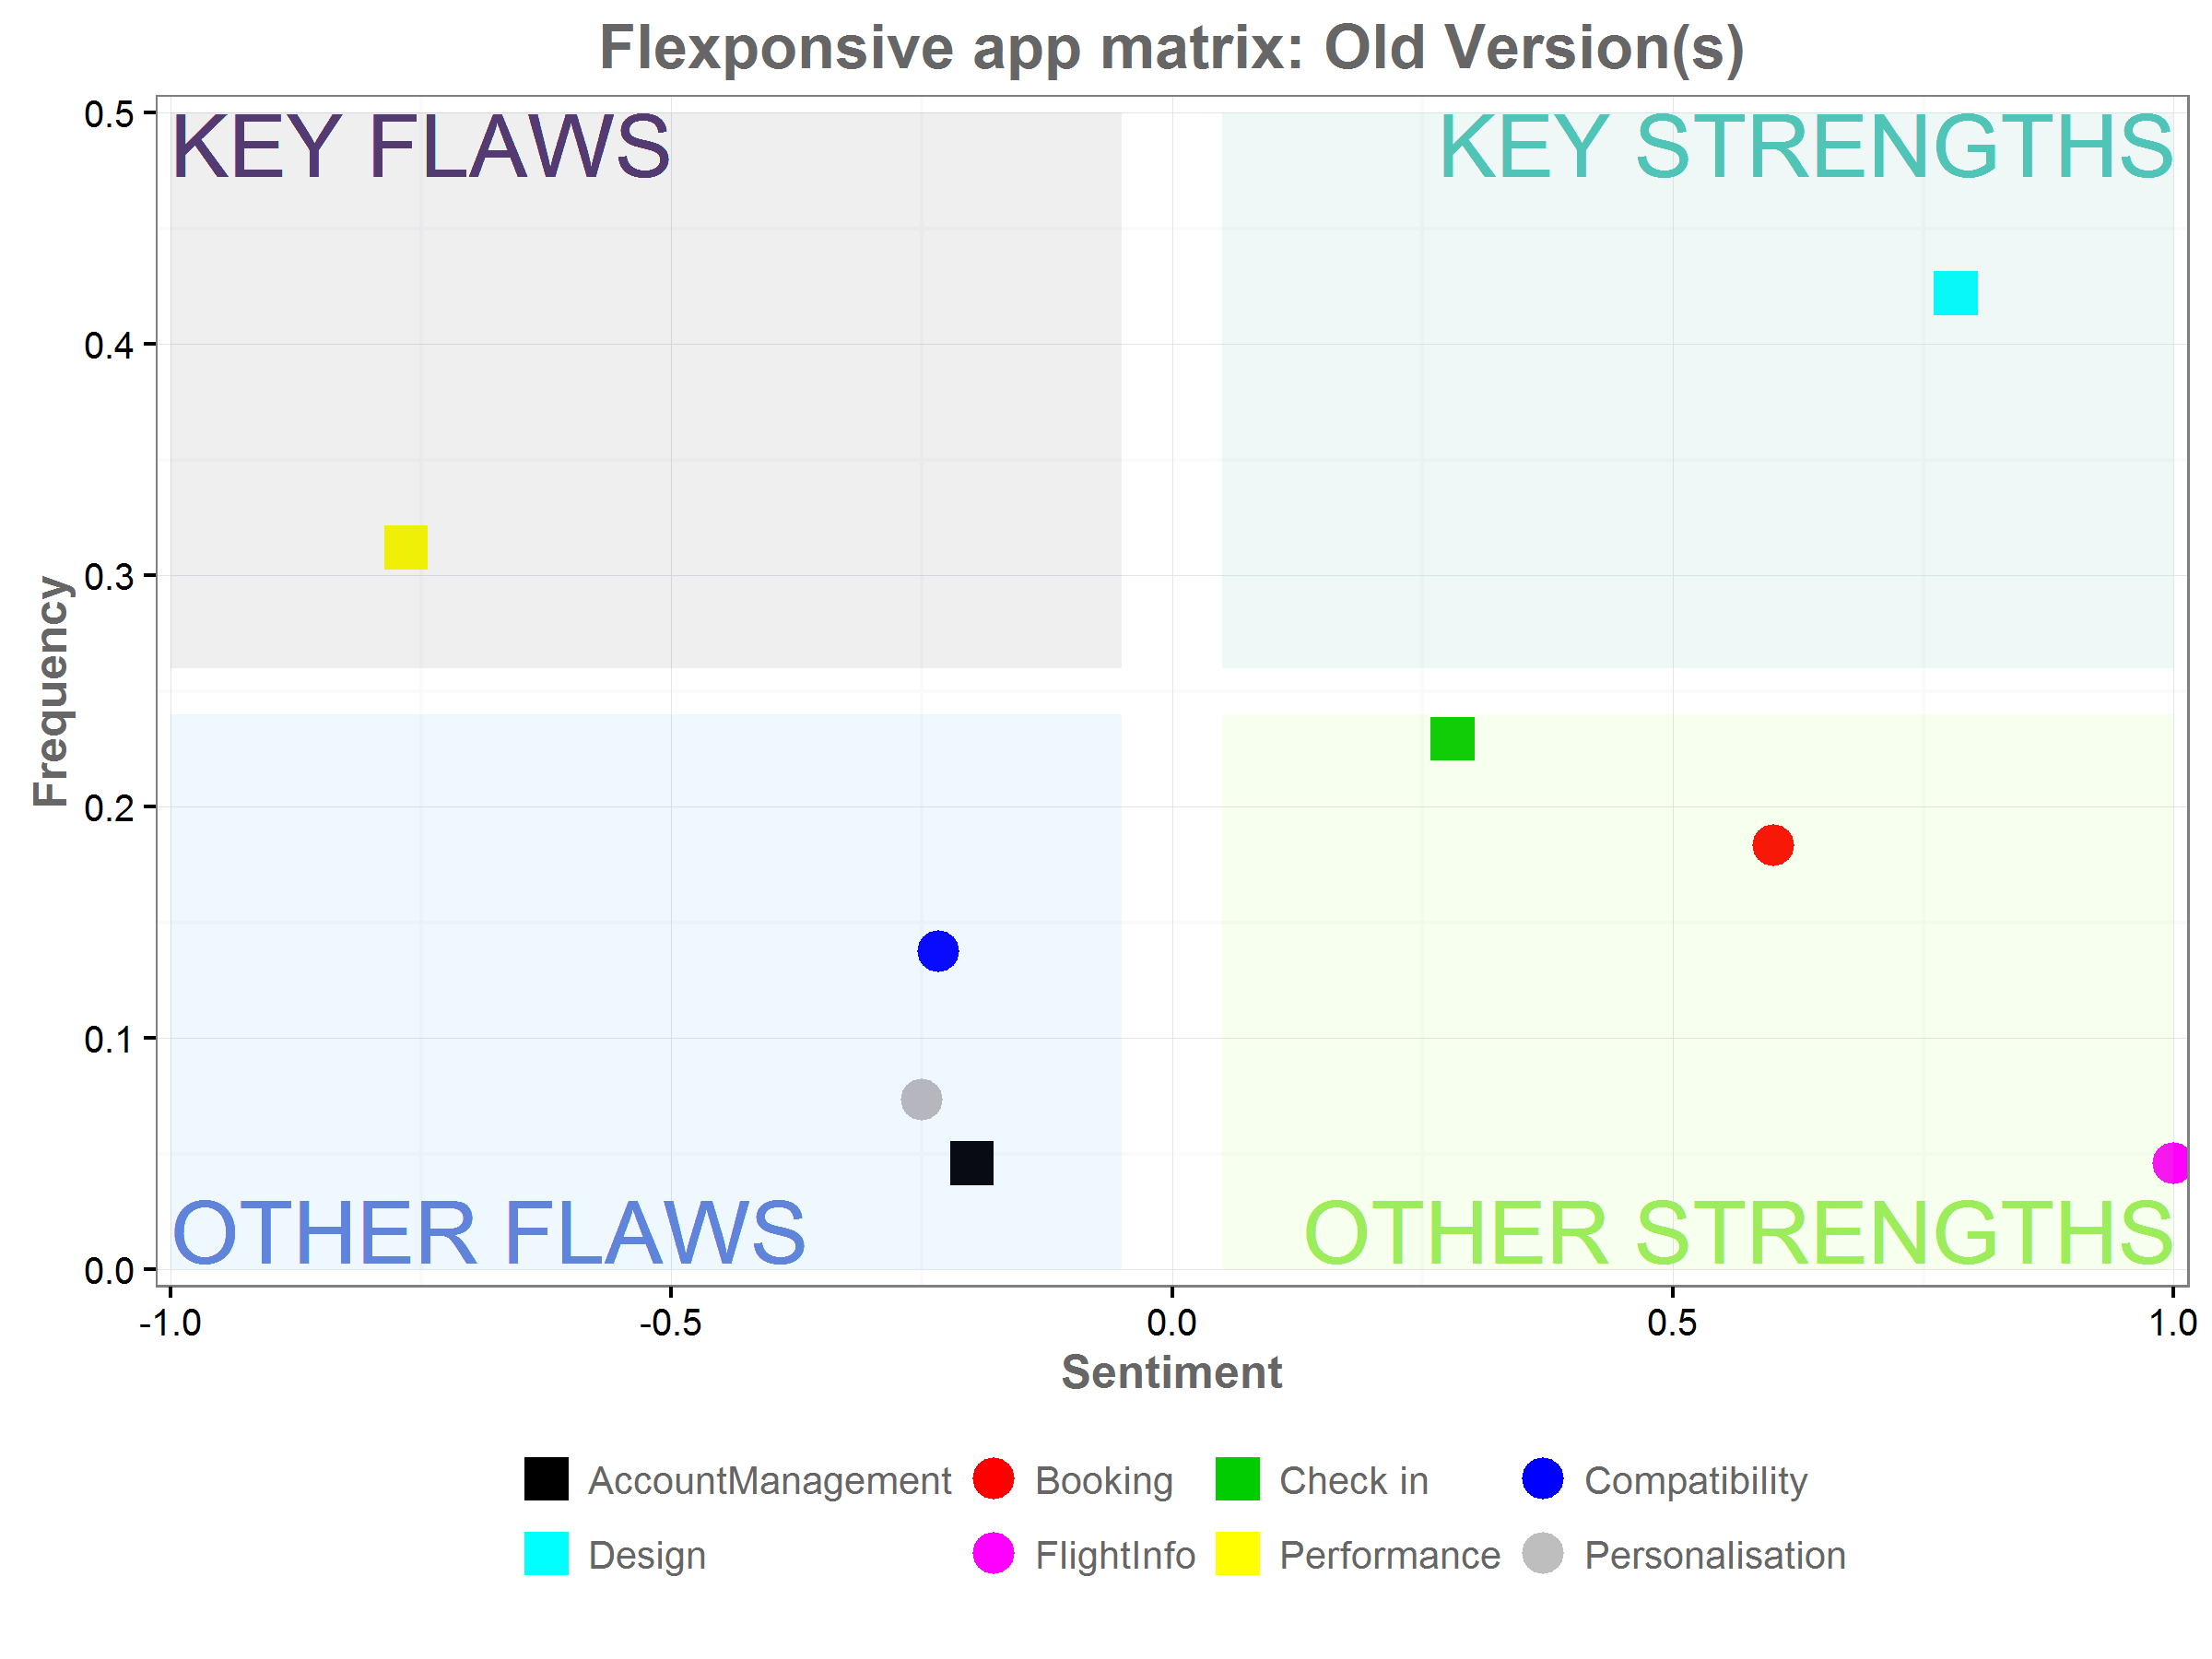 A graph with 4 sections, showing the flaws and strengths of the old app.